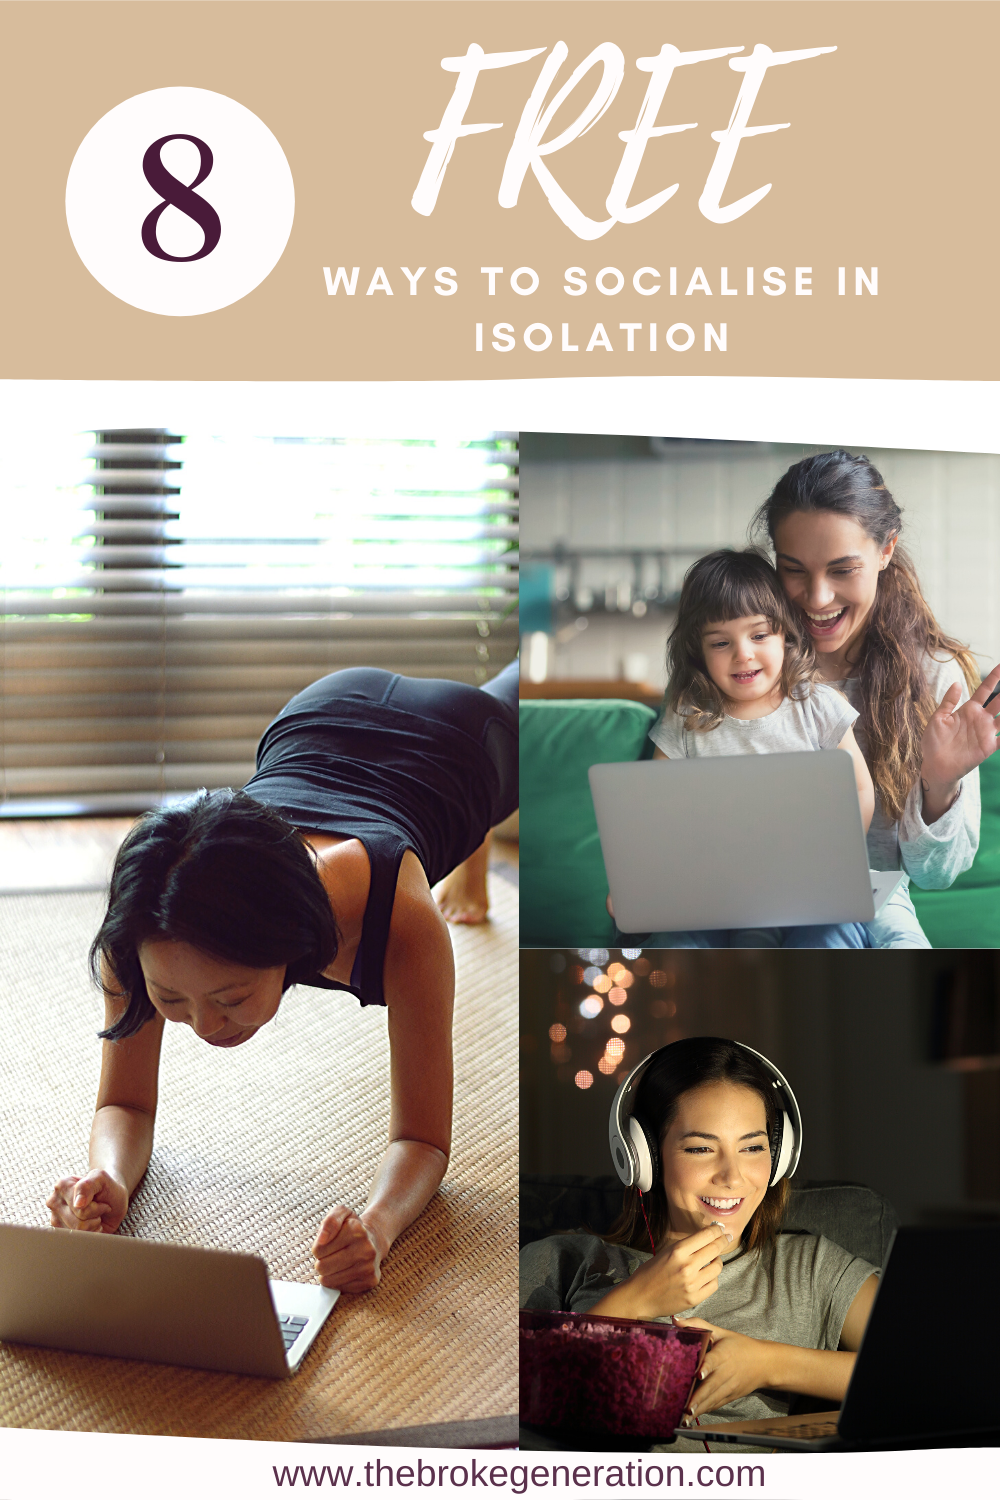 8 free ways to socialise while in isolation